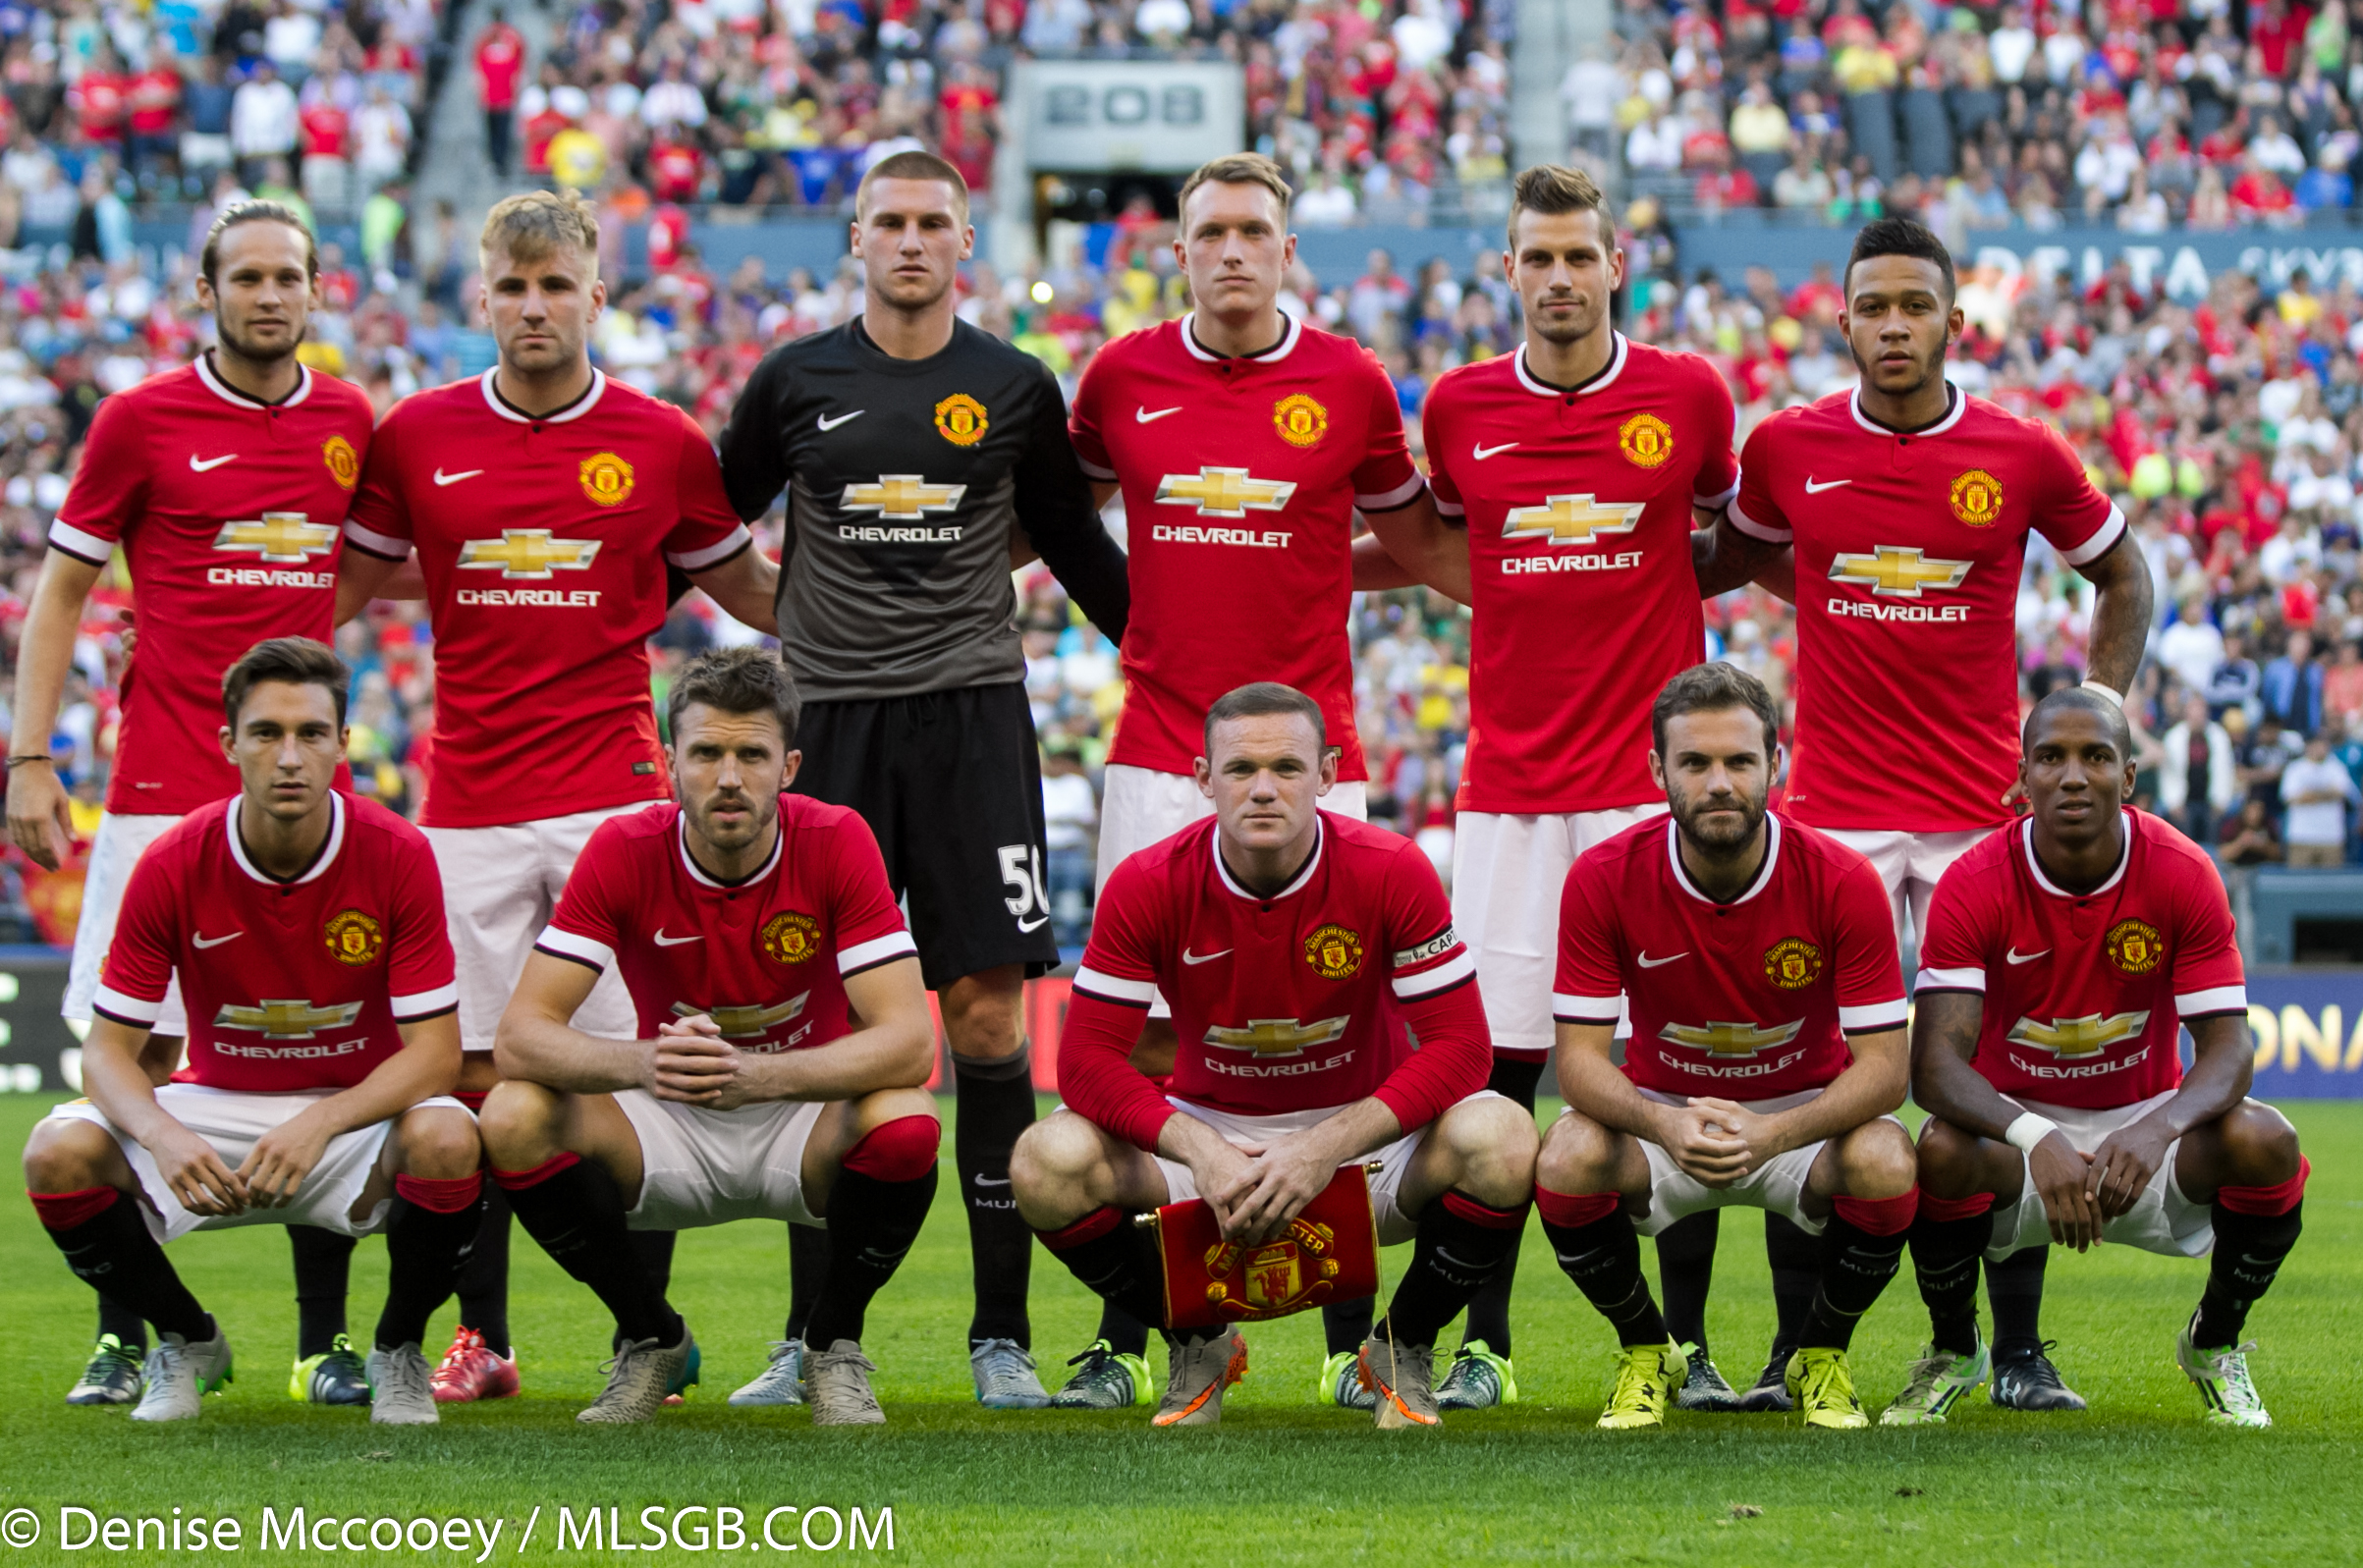 Hilo del Manchester United Man-u-v-club-america-seattle-2015-0223